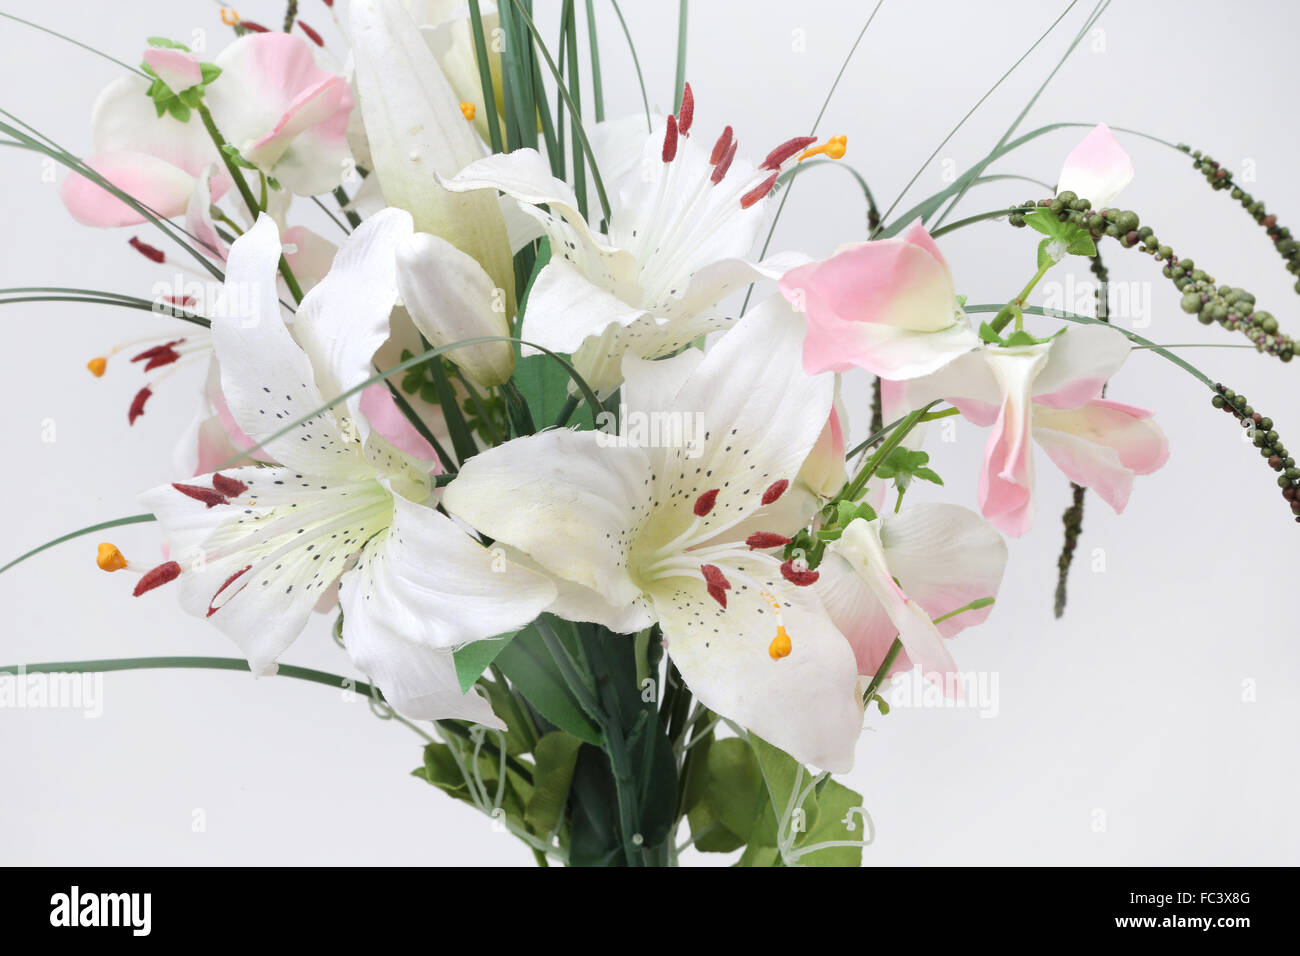 A bouquet of fabric flowers fake lillies stock photo 93514192 alamy a bouquet of fabric flowers fake lillies izmirmasajfo